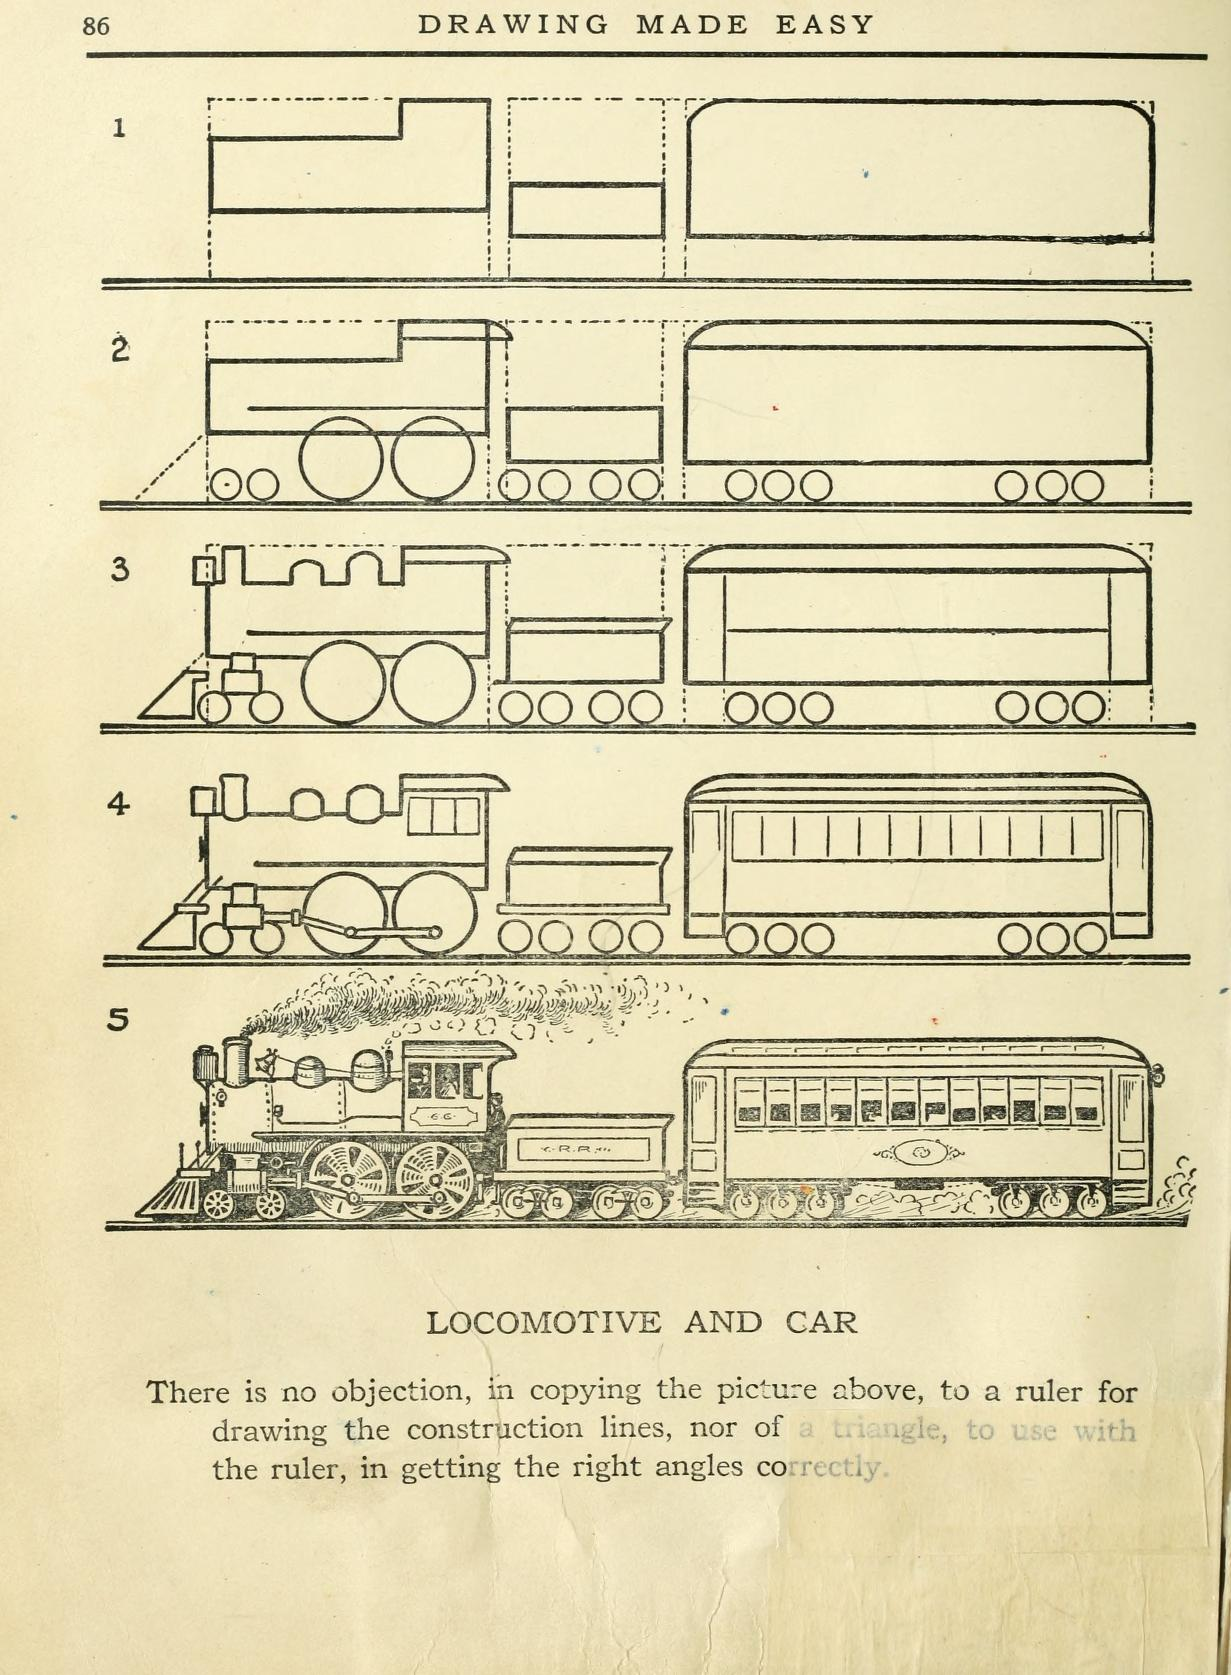 drawing made easy how to draw a locomotive and car